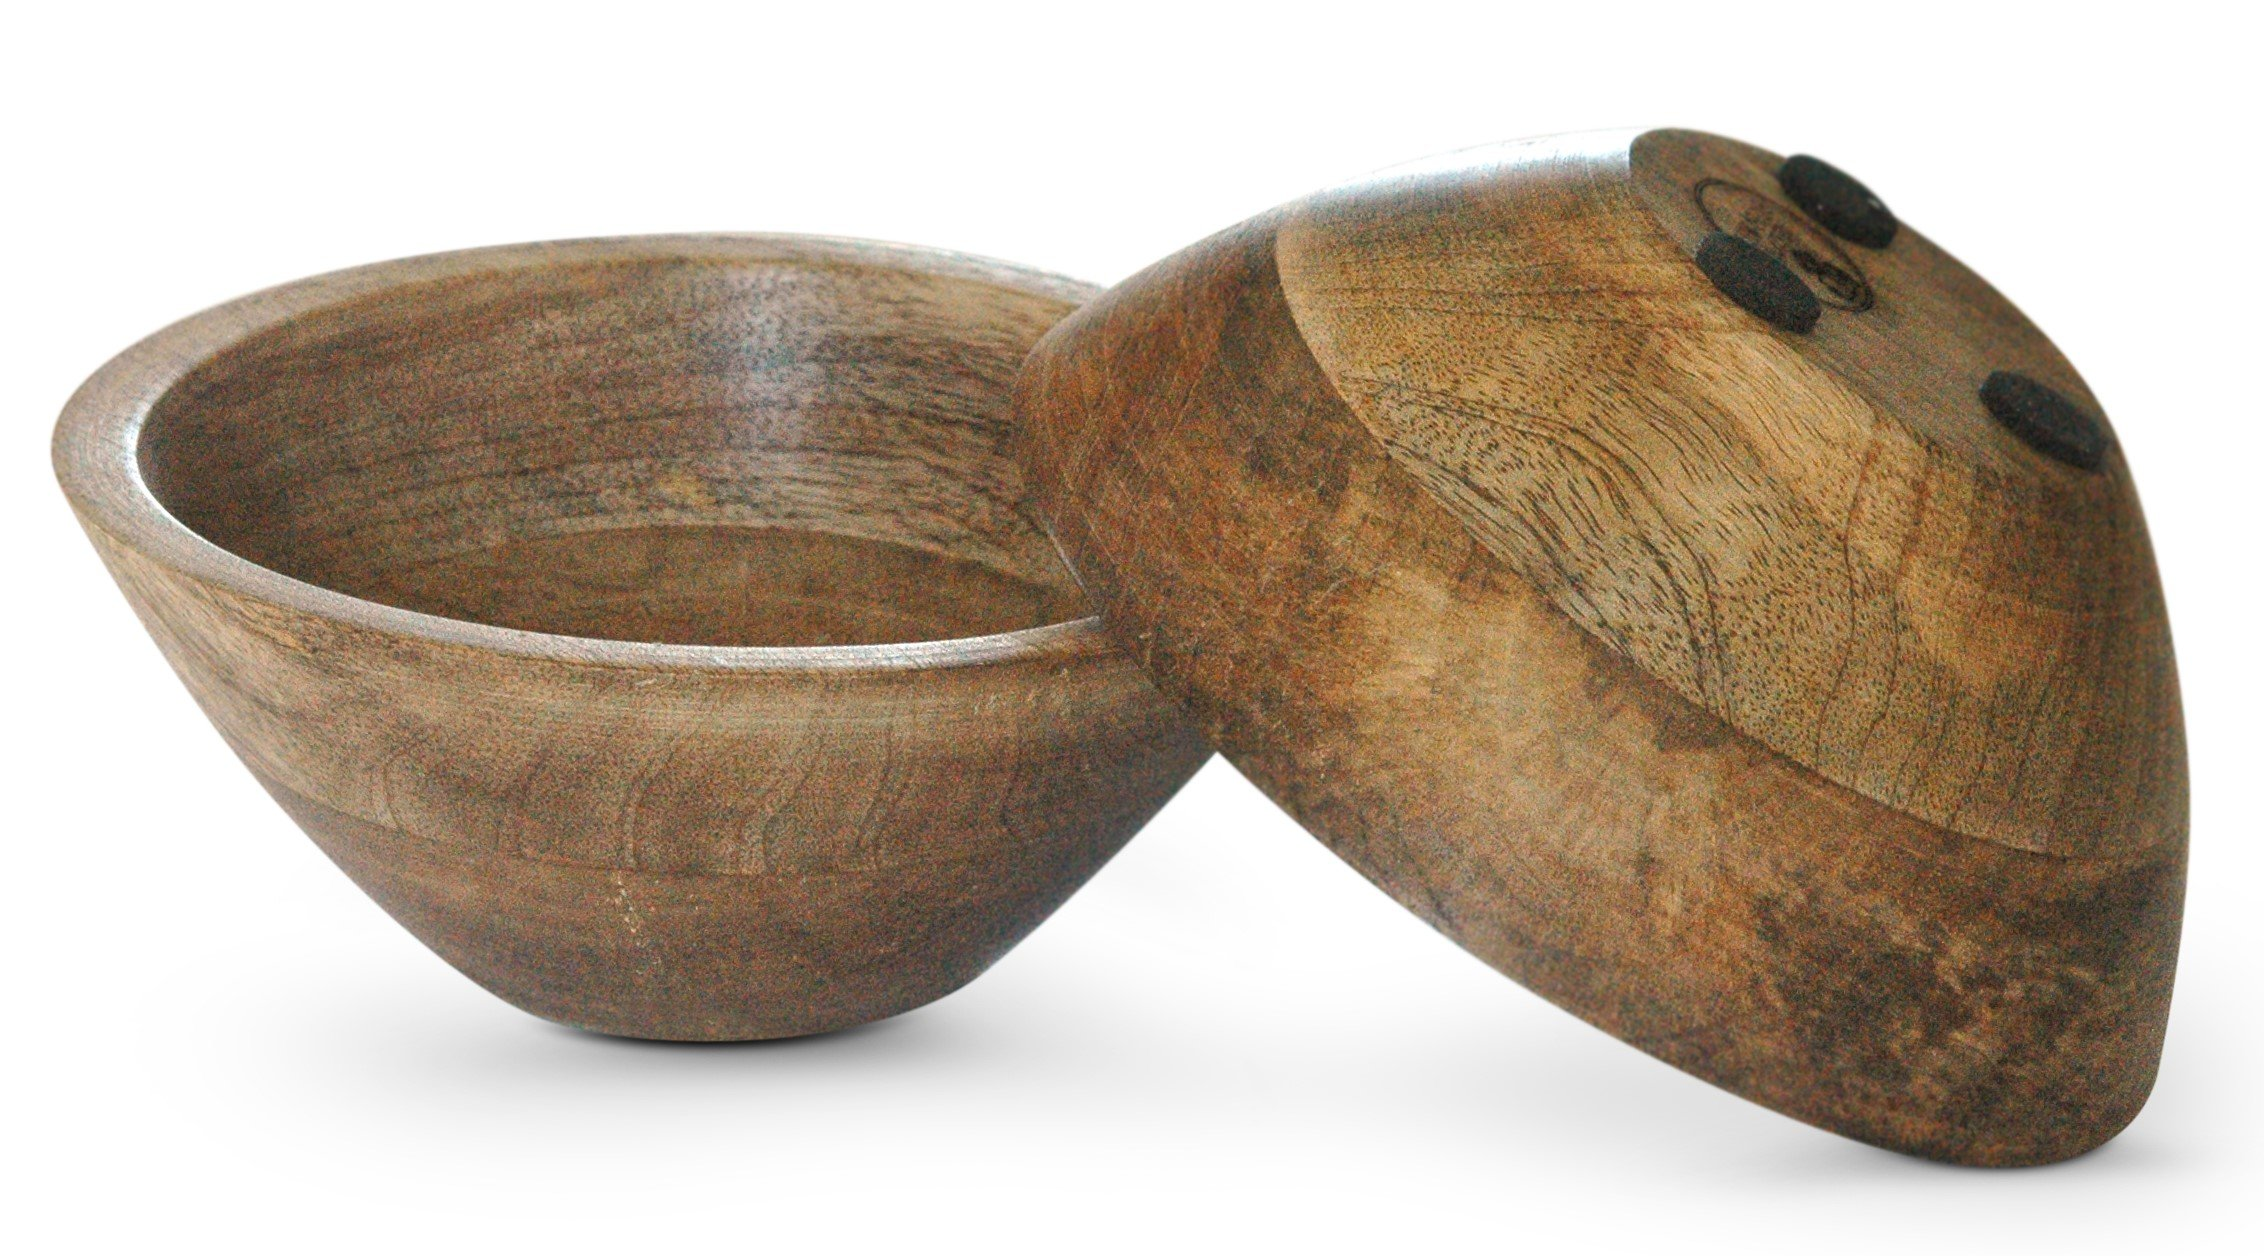 Large 7: Bowls. Fit to be Added to Your Snack/Hostess Gift Ideas for Next Party - Set of 2 Wooden Snack Bowls (2)